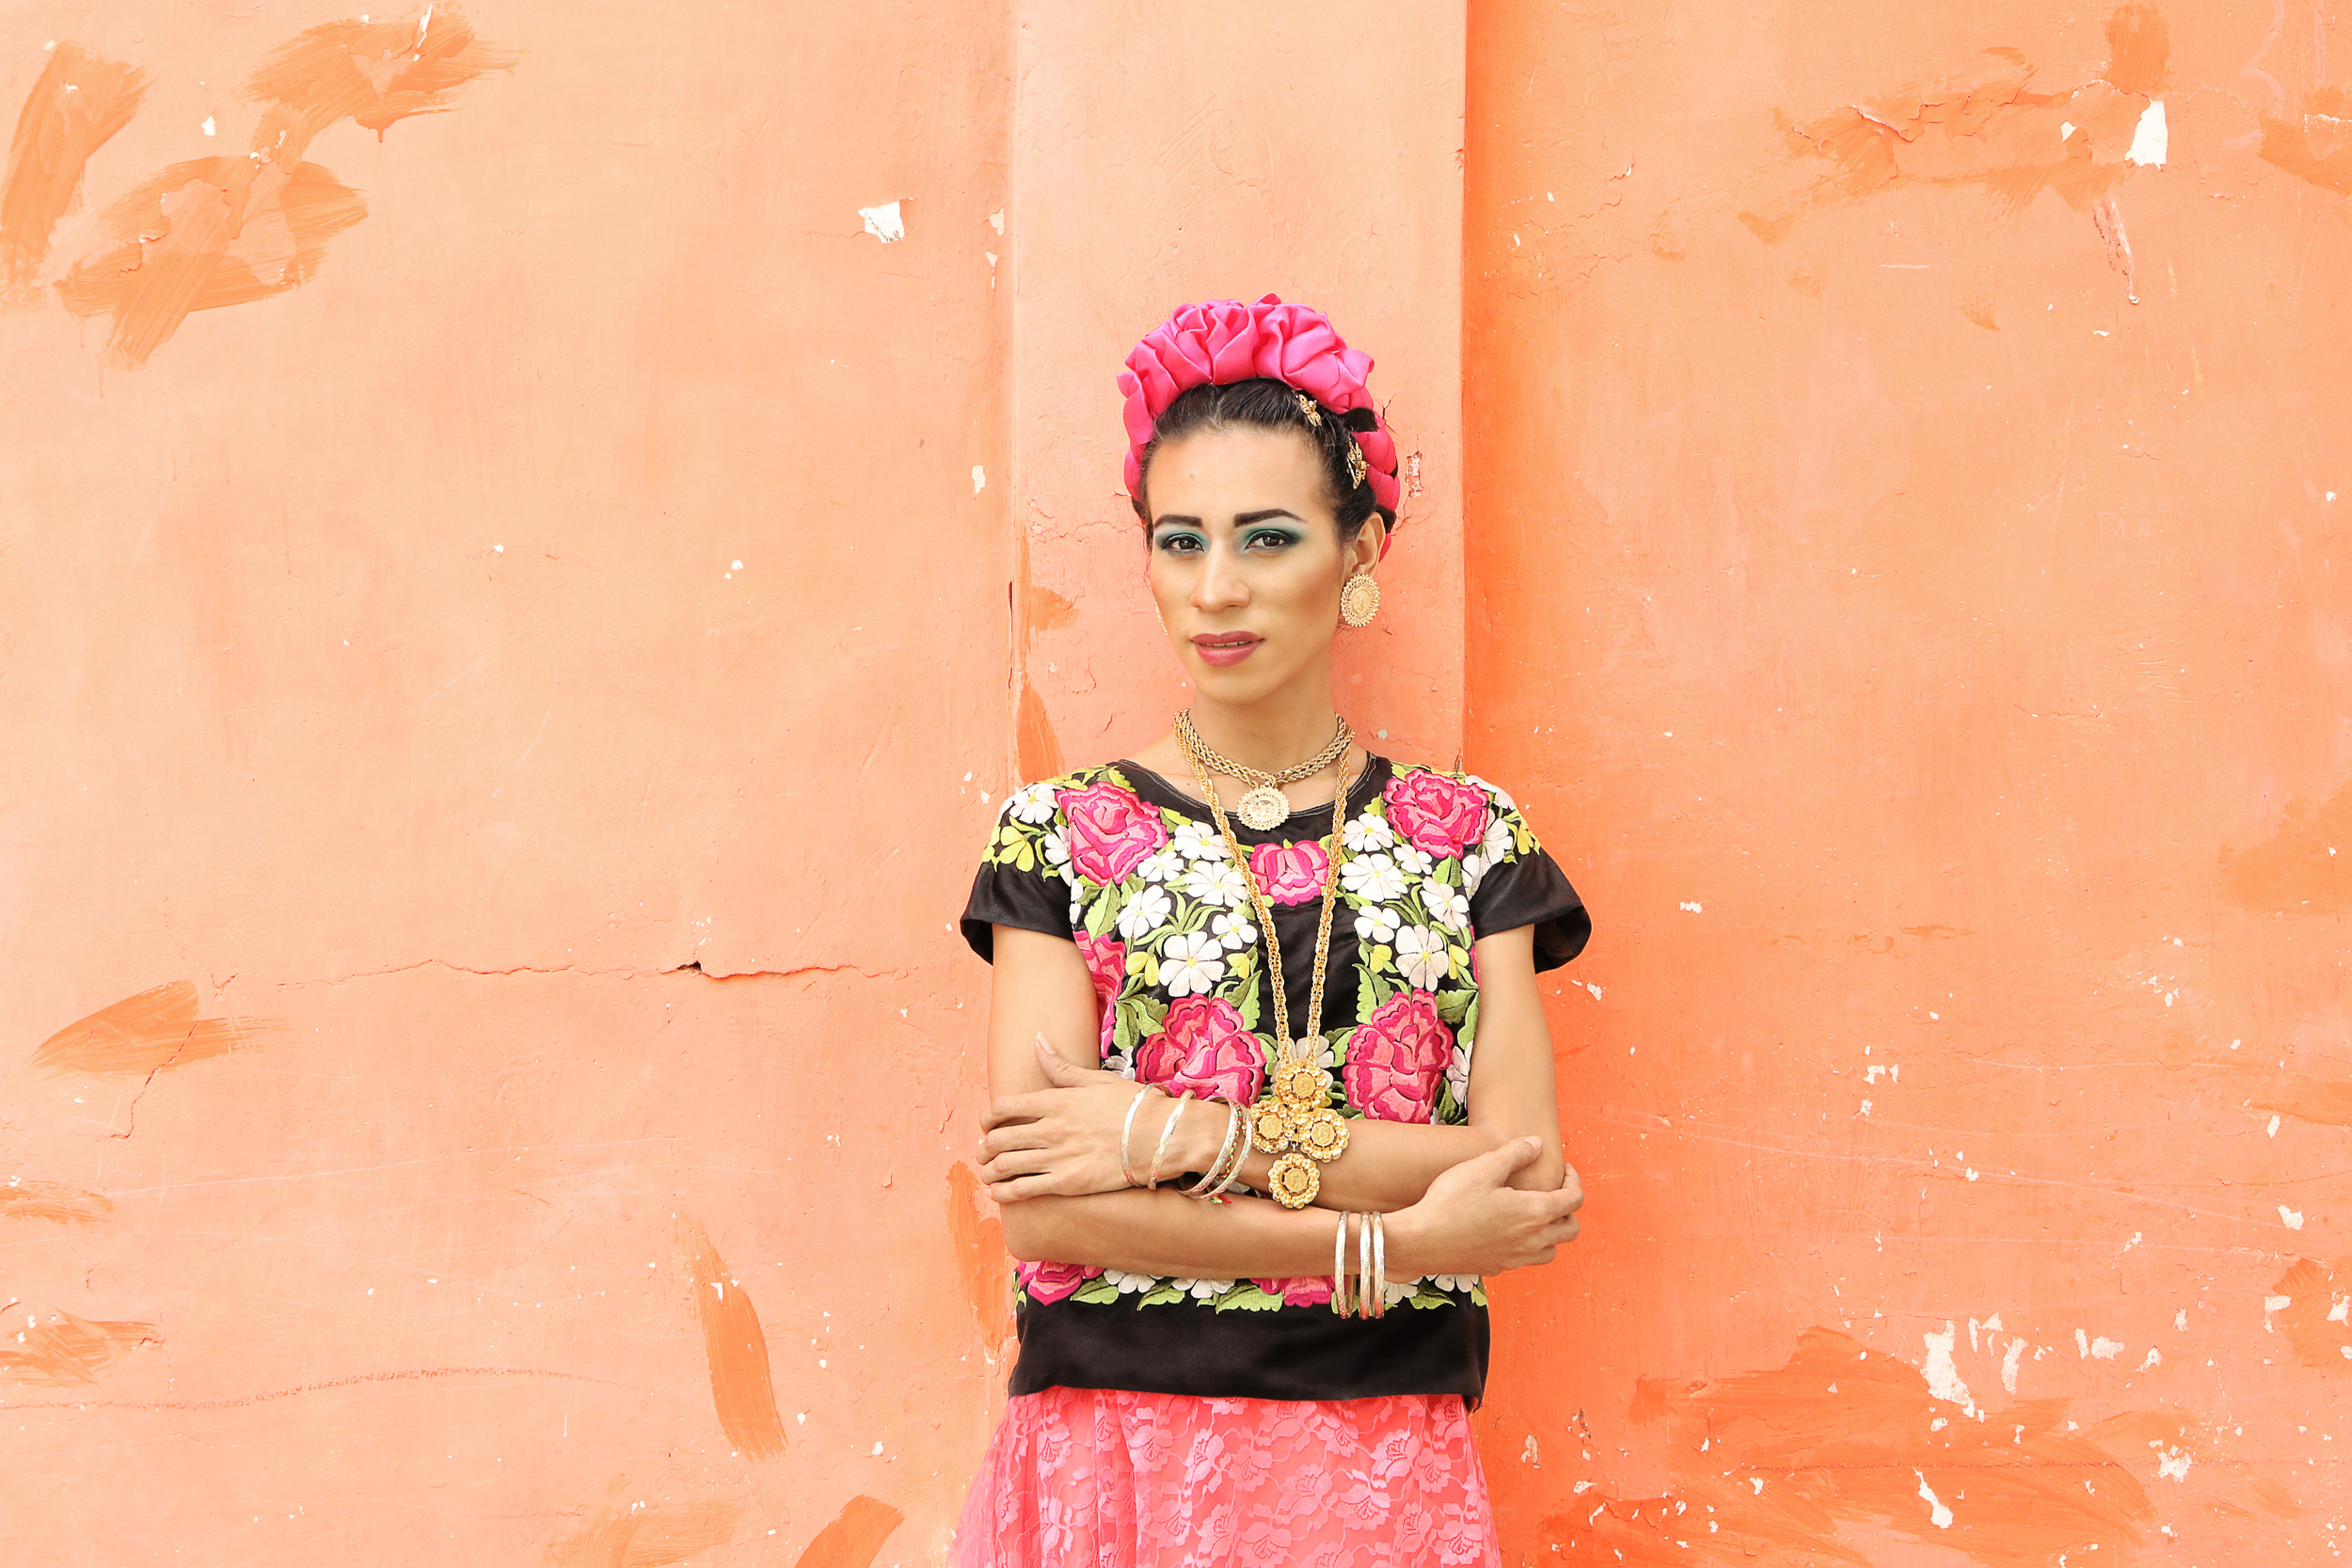 A photo documentary series of Mexico's transgendered Zapotecs  Involvement: Art direction, photography, post production